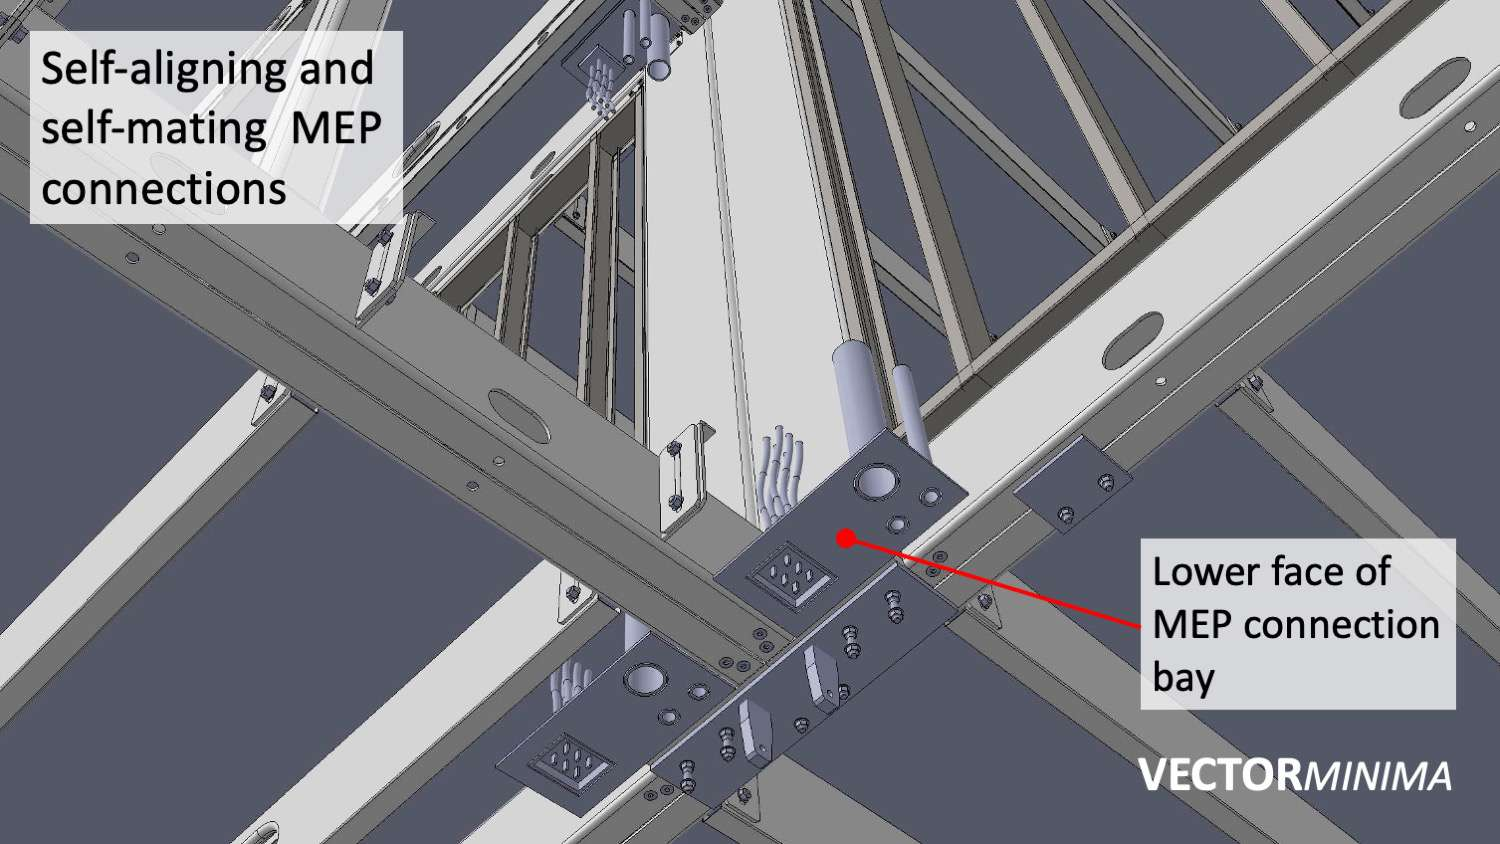 MEP connections